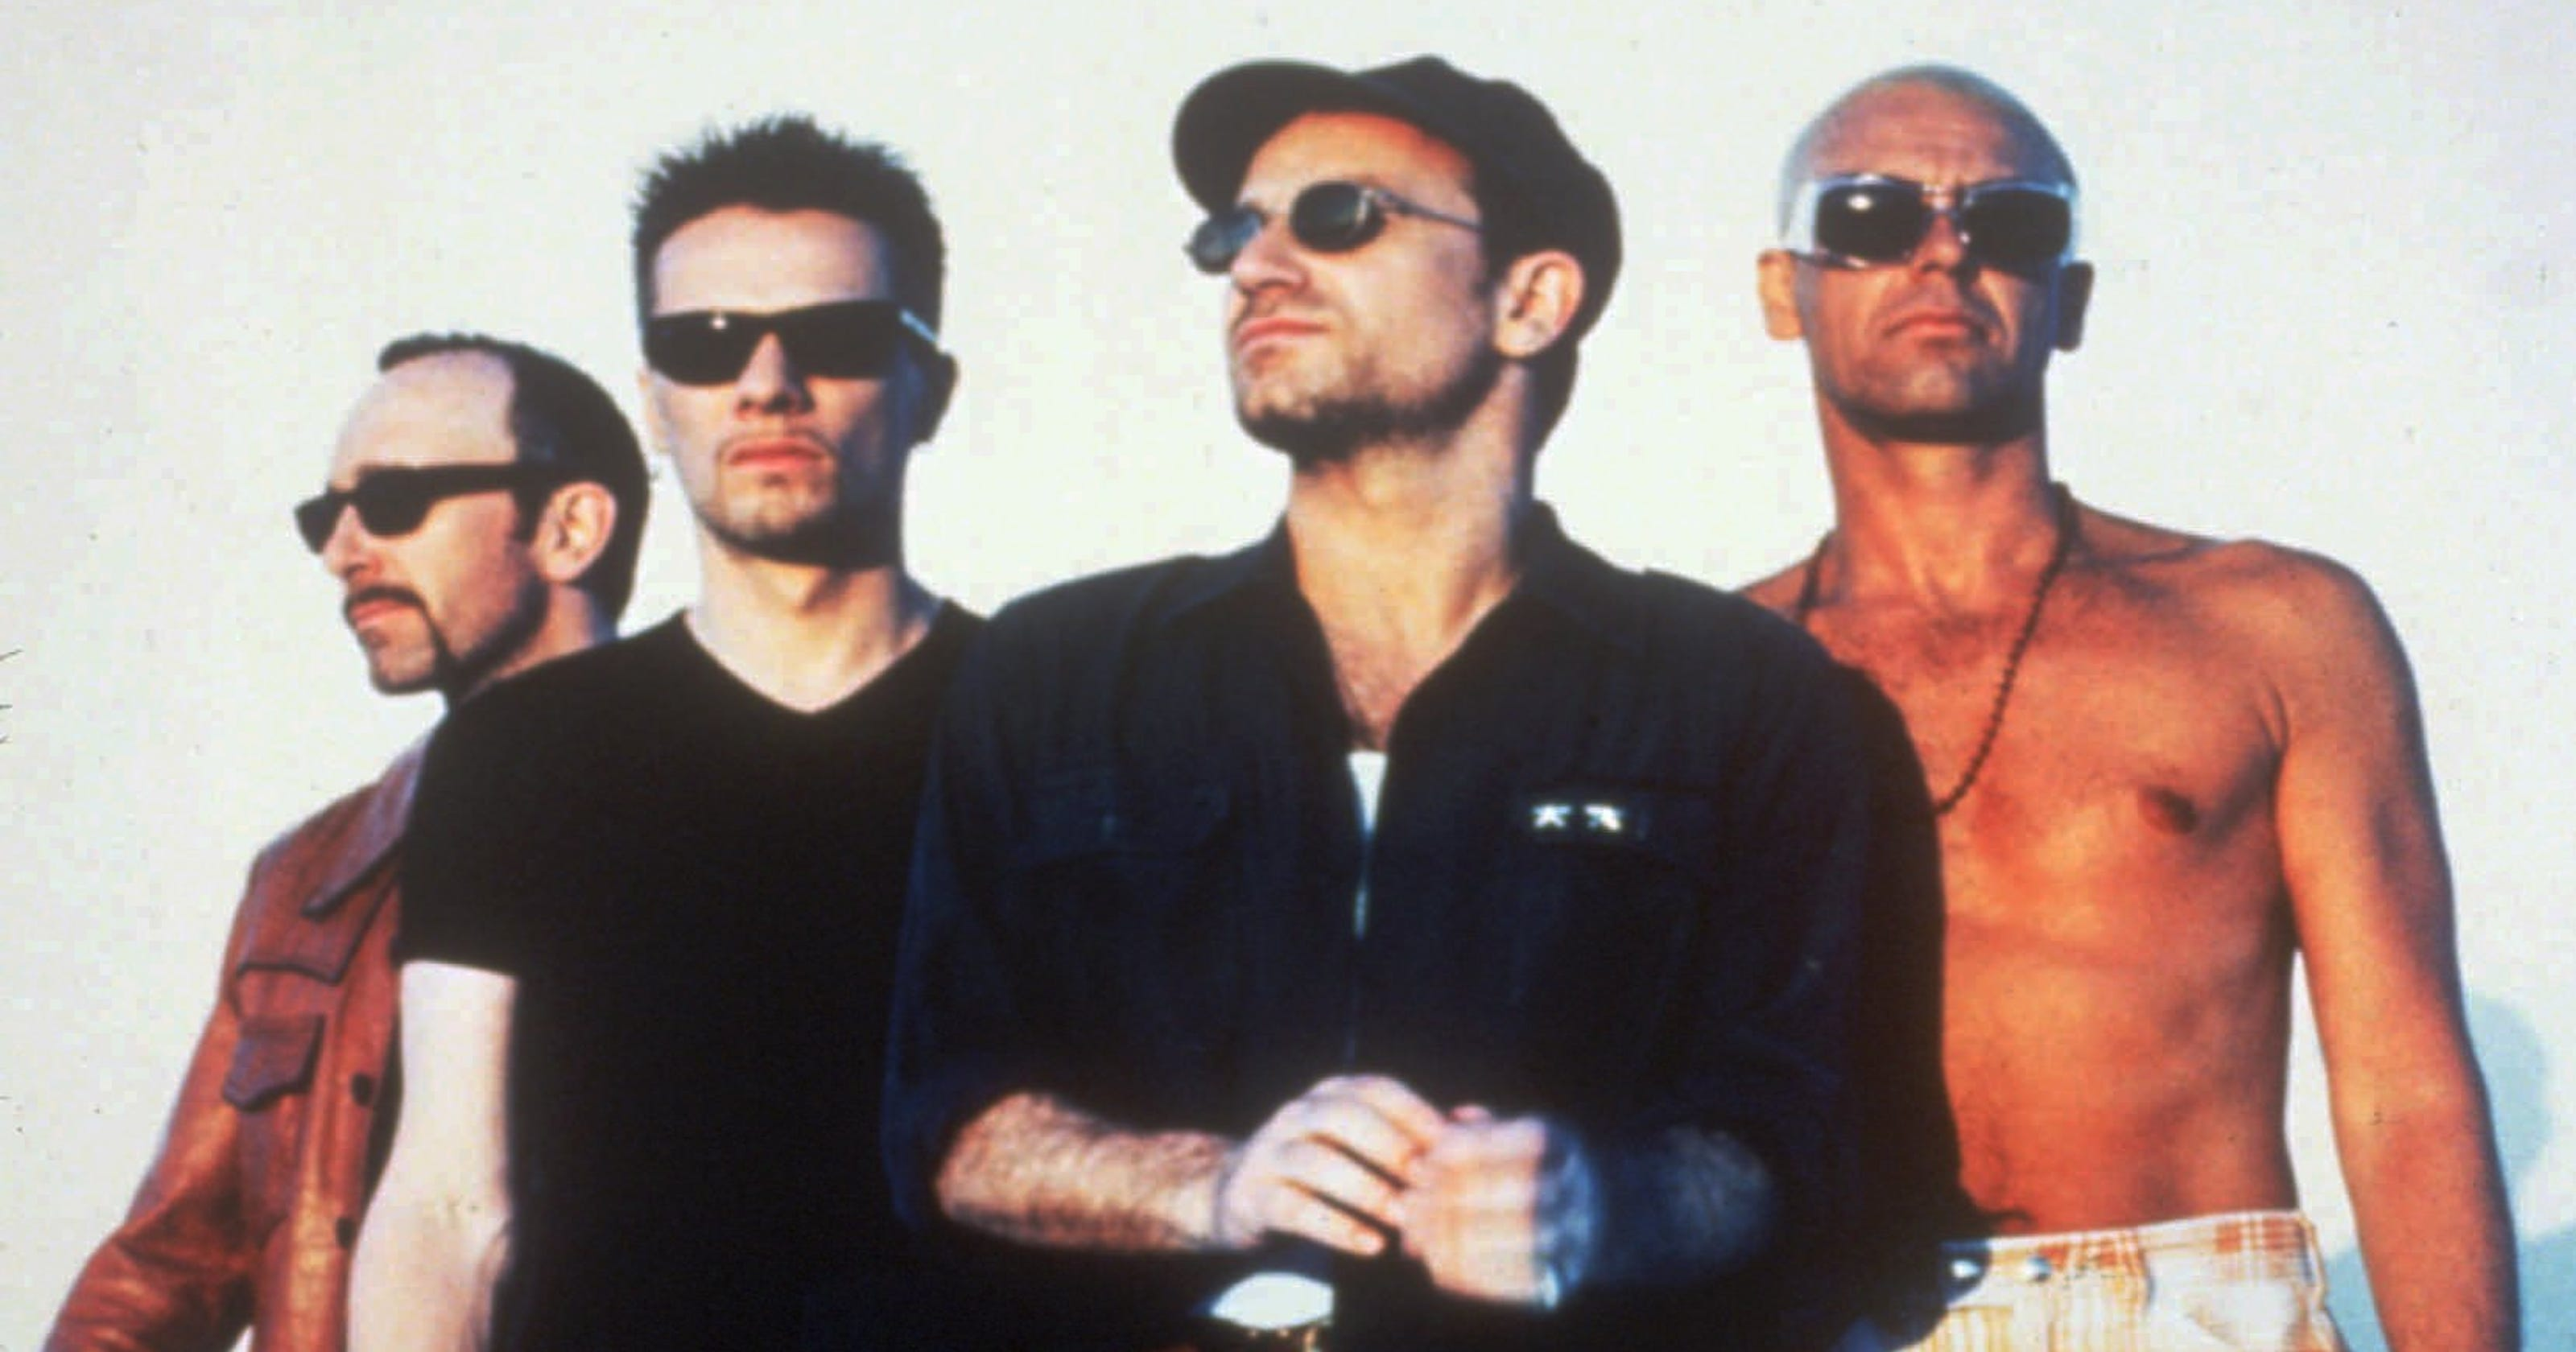 Best U2 albums? Counting down to 'War'